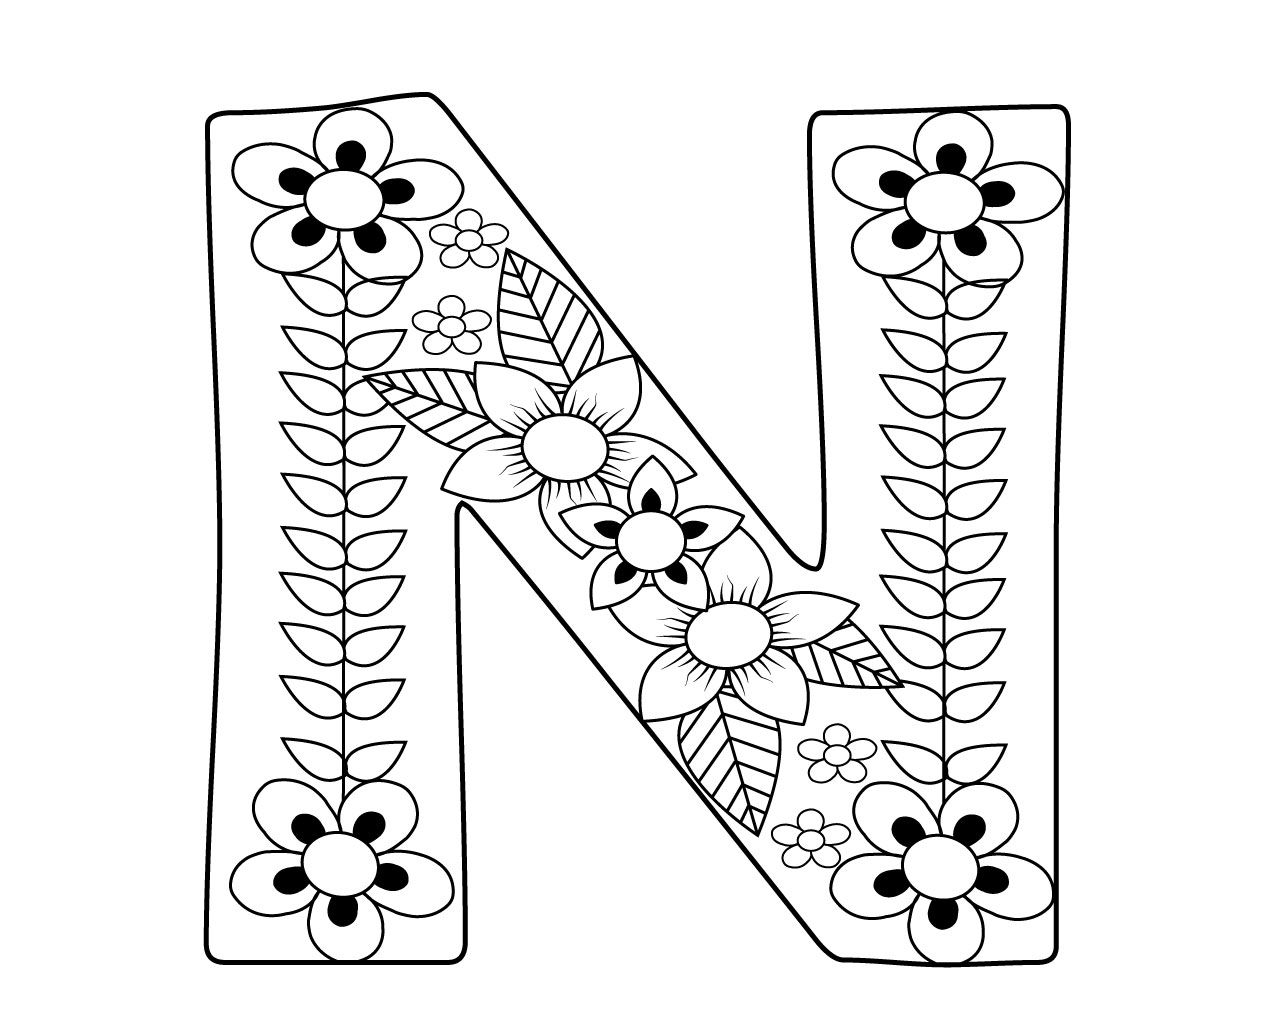 Letter N Coloring Pages For Adults Coloring Letters Coloring Pages Alphabet Coloring Pages